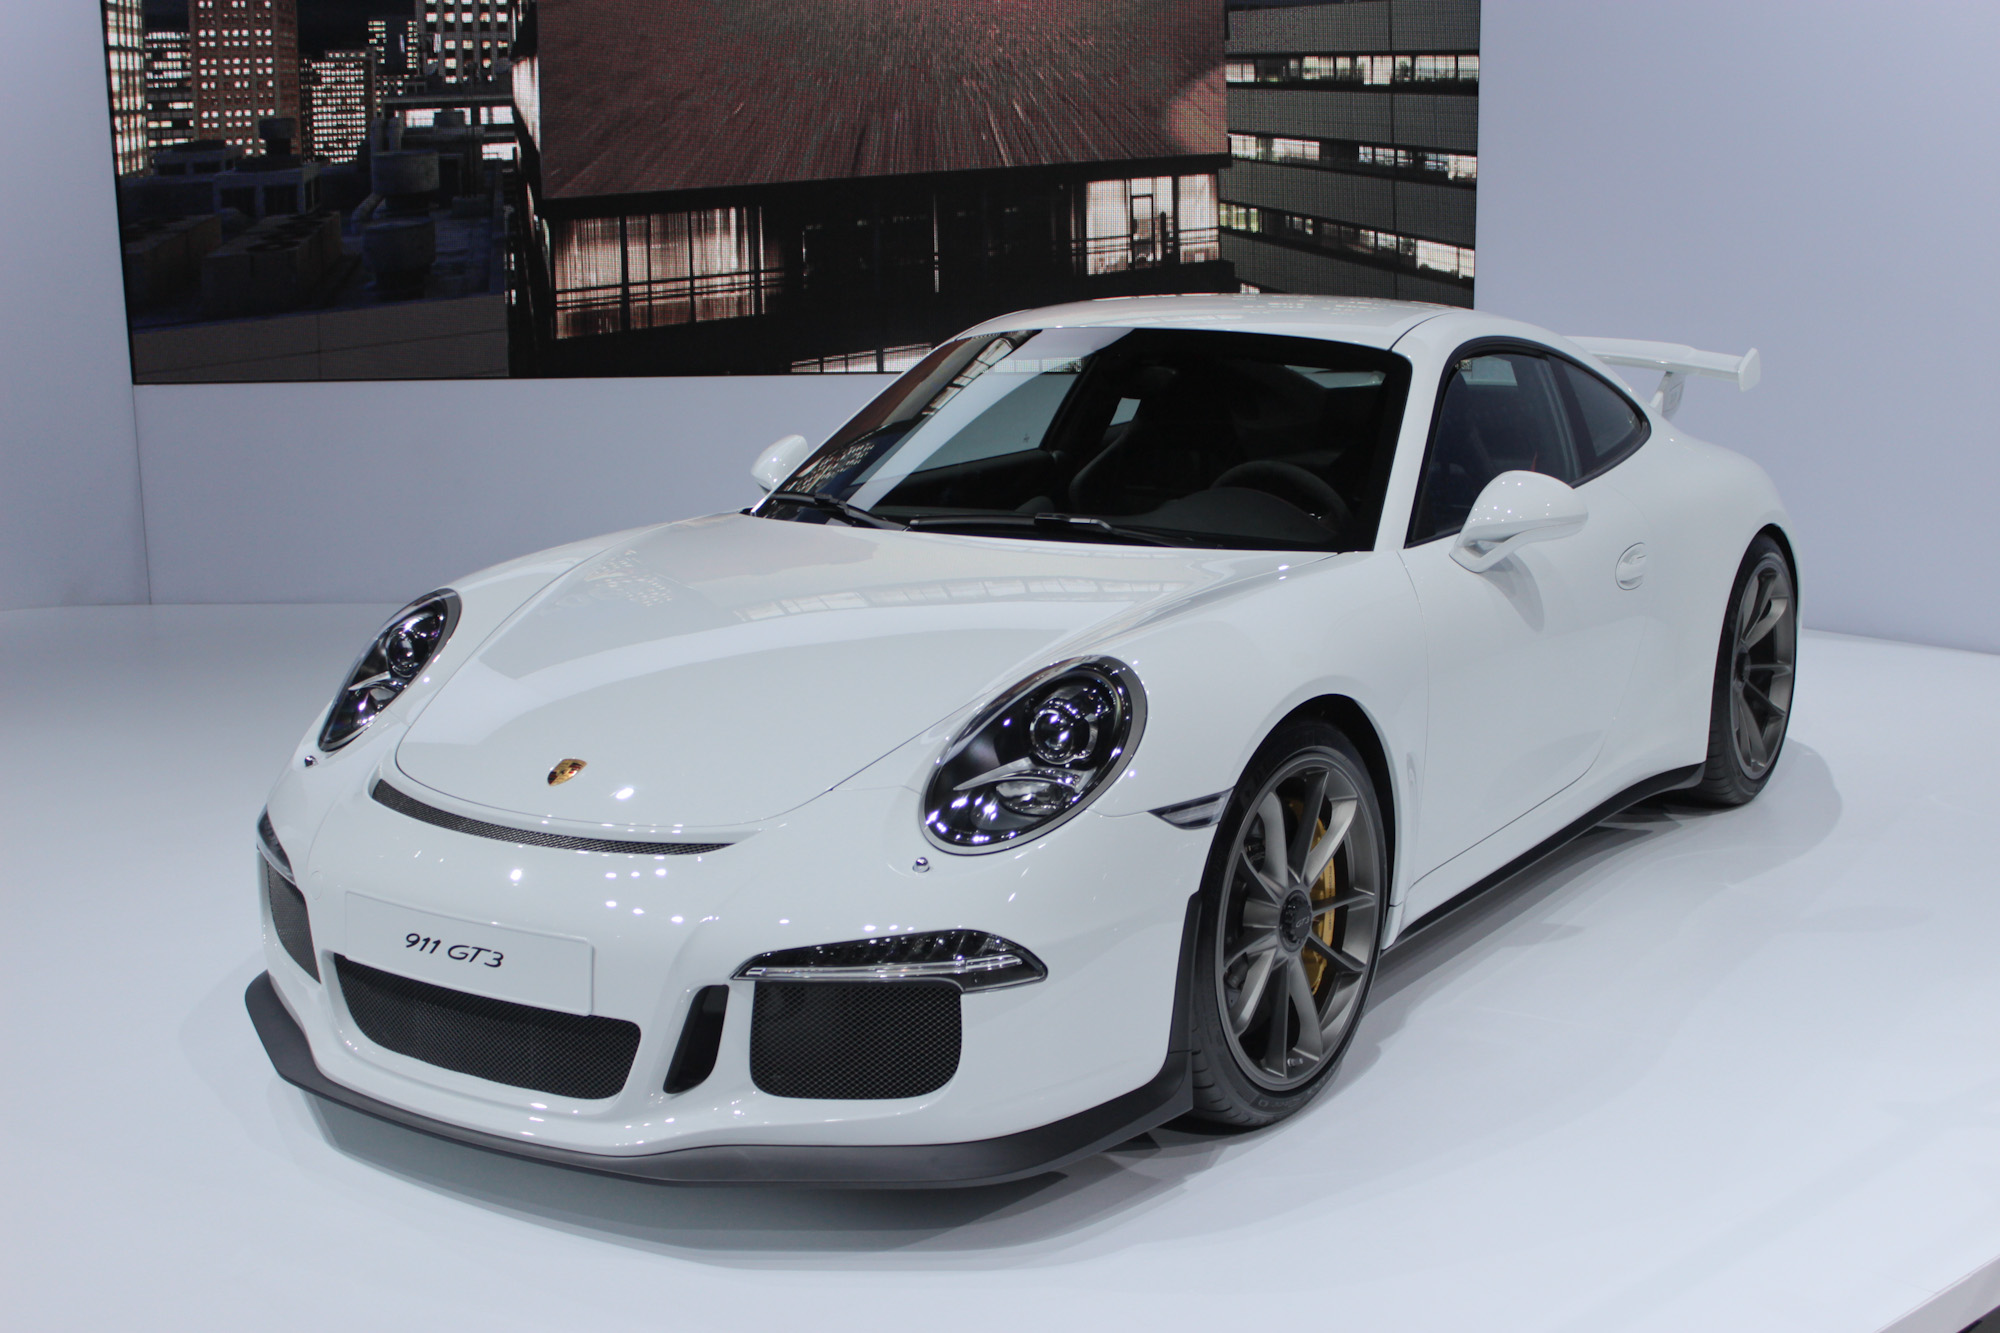 Auto Auction Los Angeles >> 2014 Porsche 911 GT3: Live Images From New York